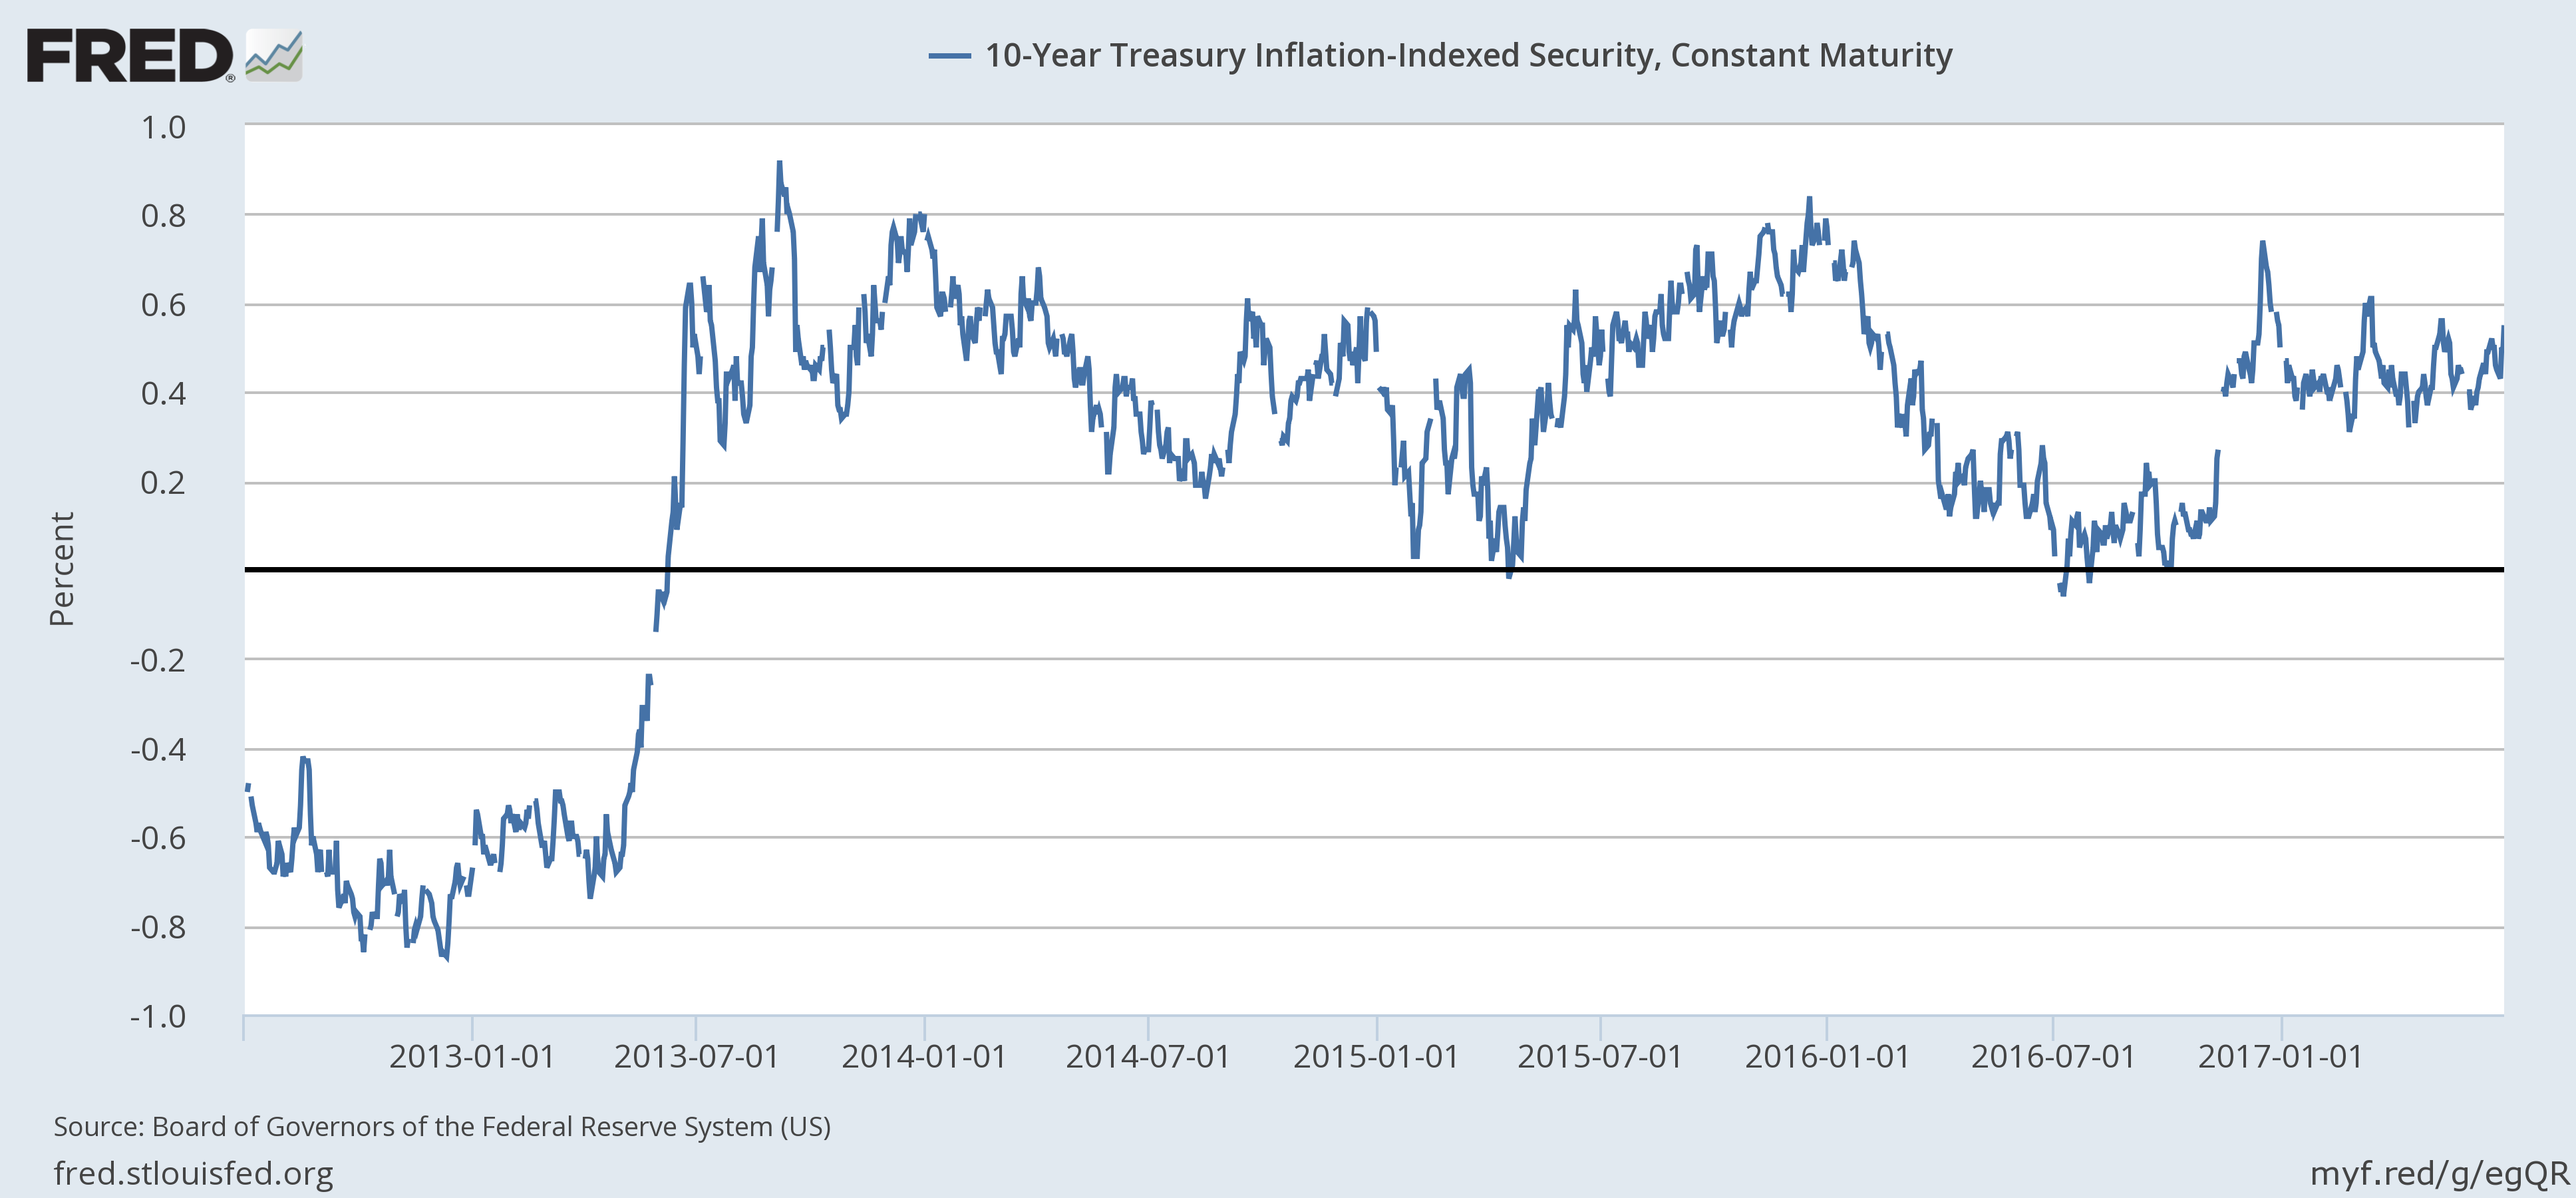 US 10 - Year Treasury Inflation Indexed Security and Constant Maturity